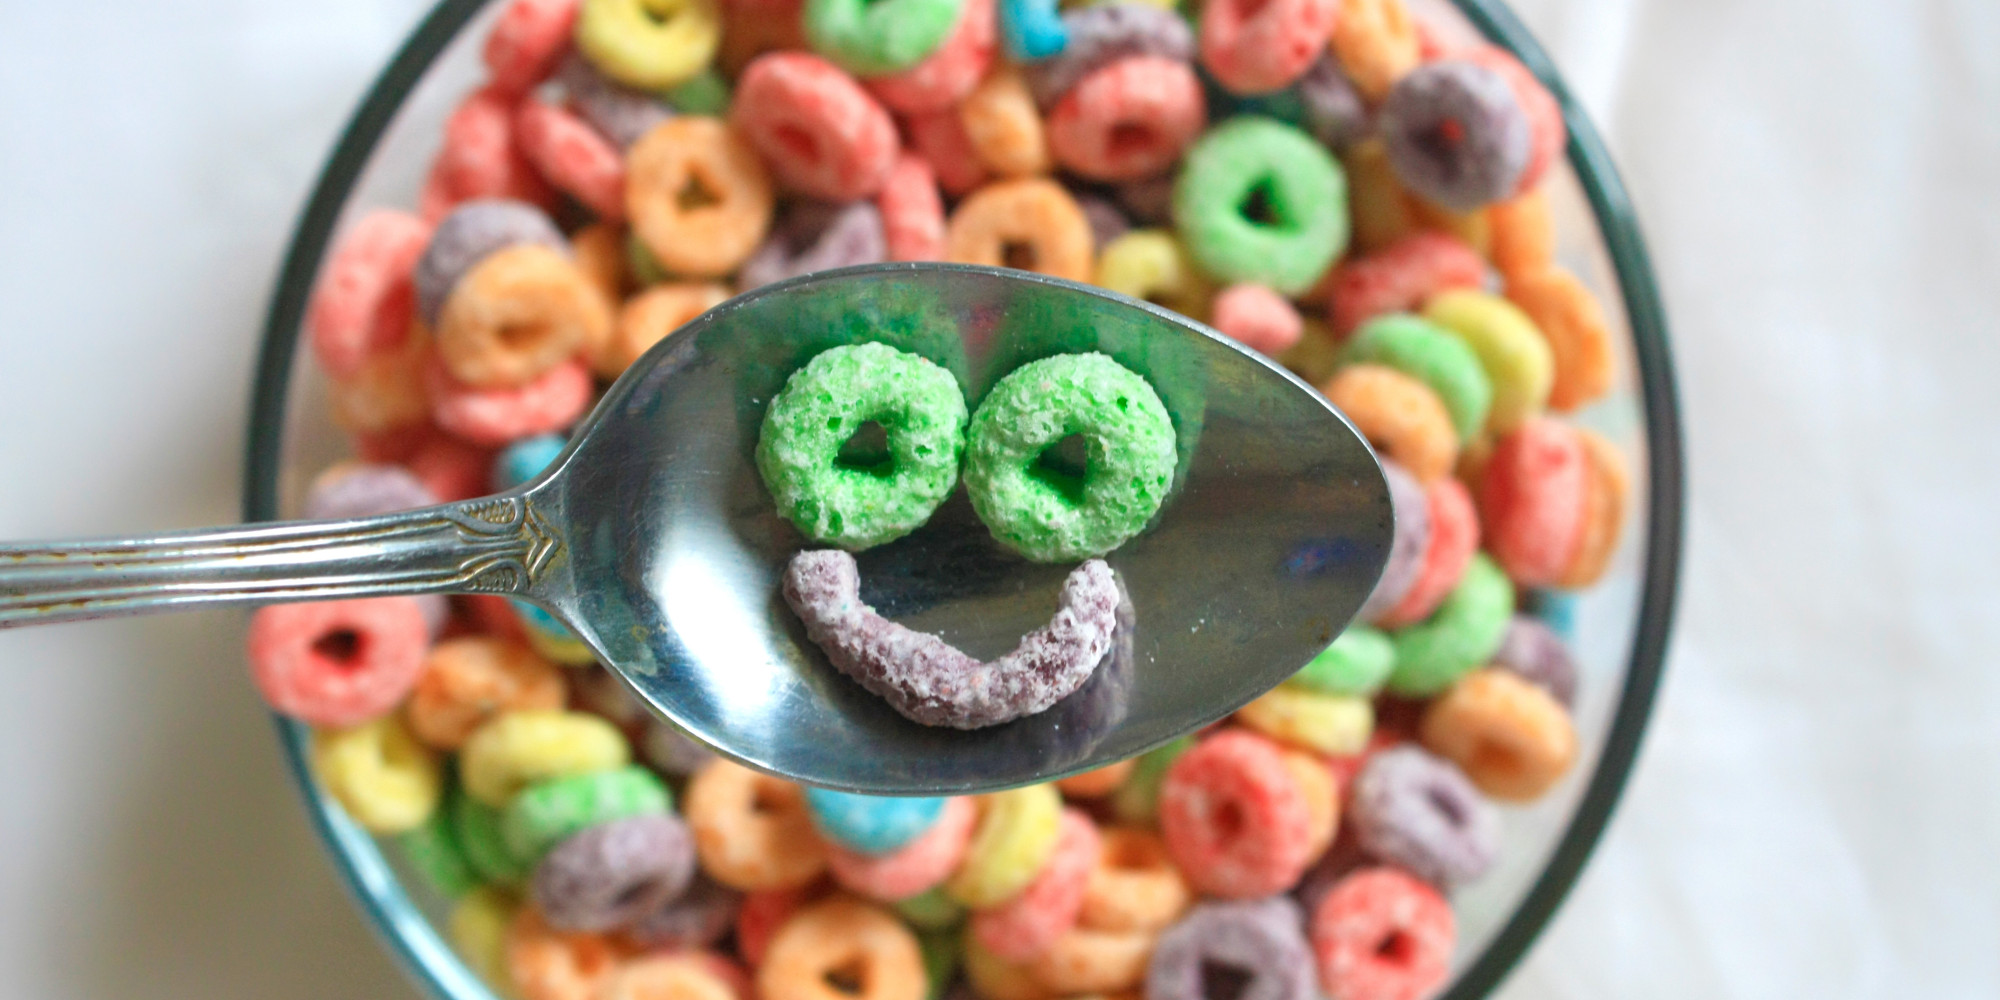 The 20 Best Cereals In Order